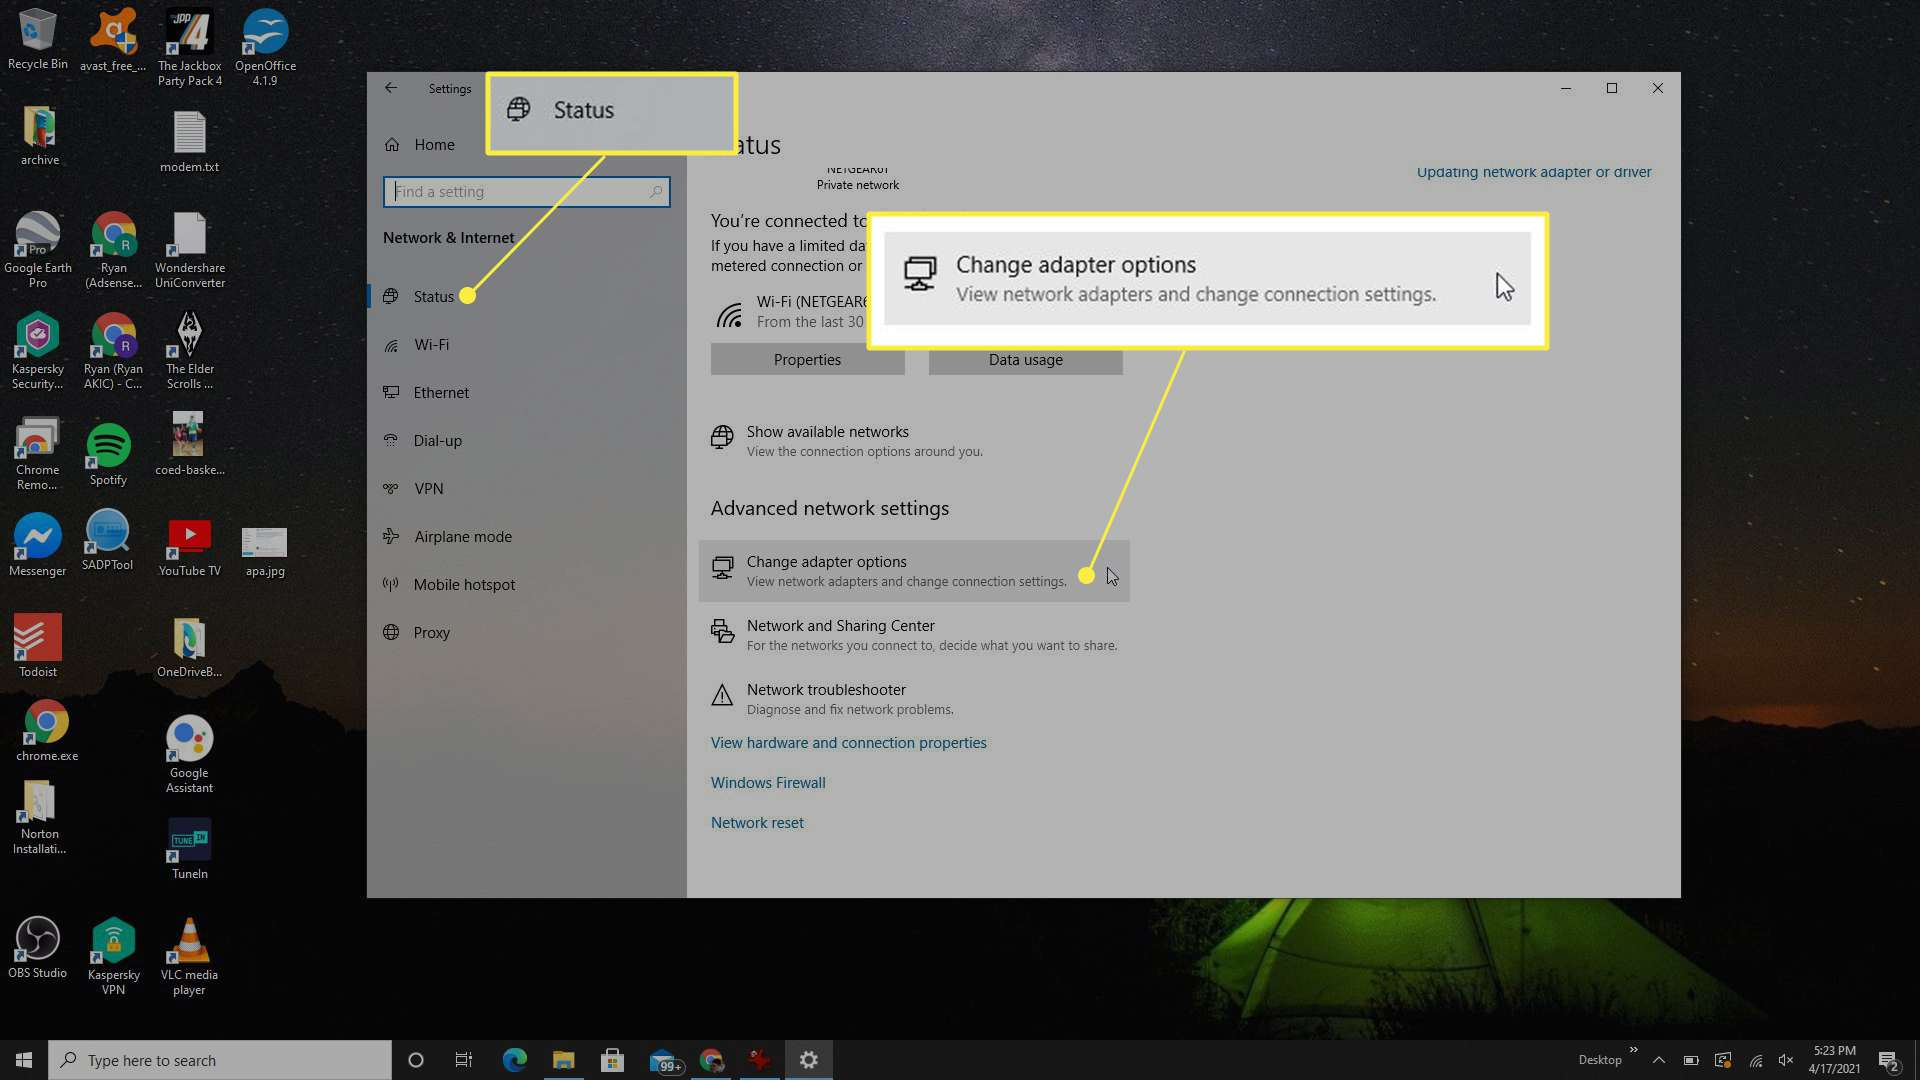 Network Settings adapter status with